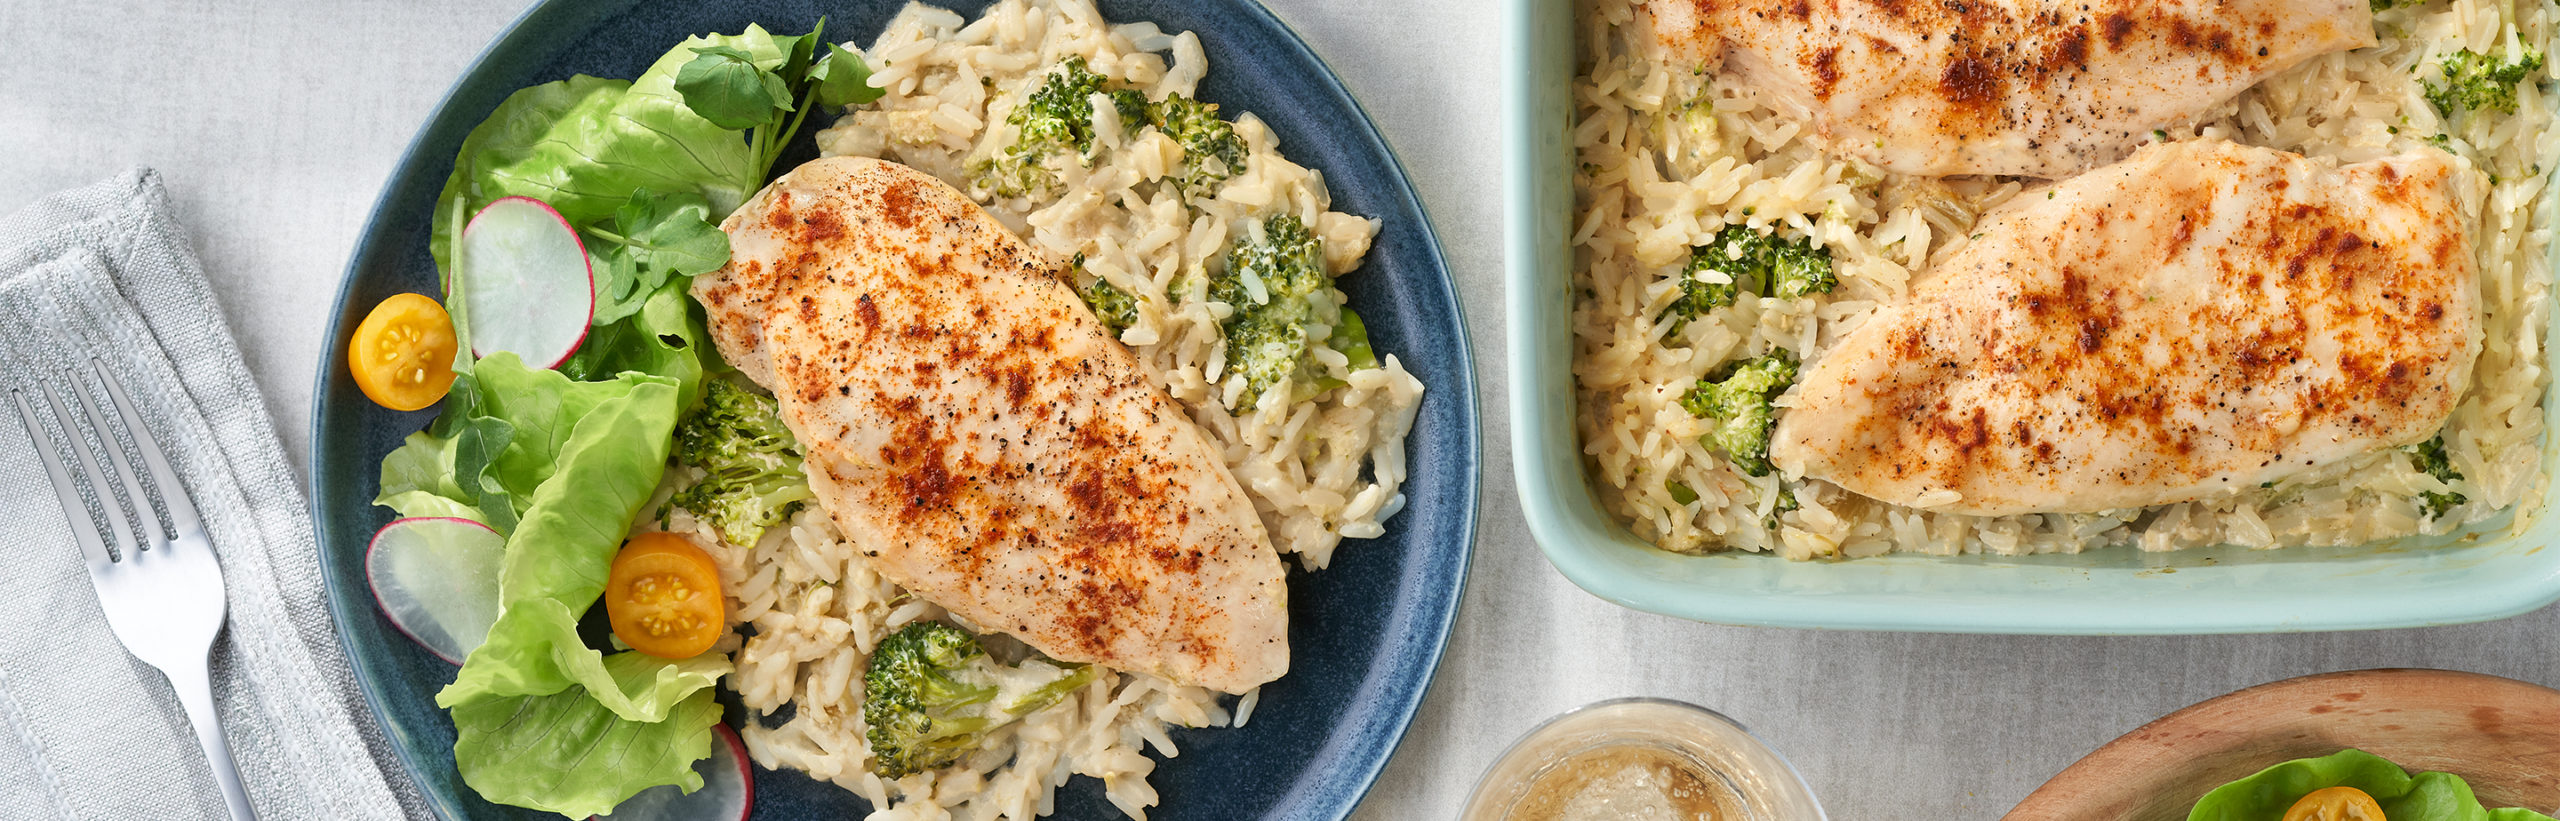 Baked Chicken Broccoli Rice Campbell Soup Company